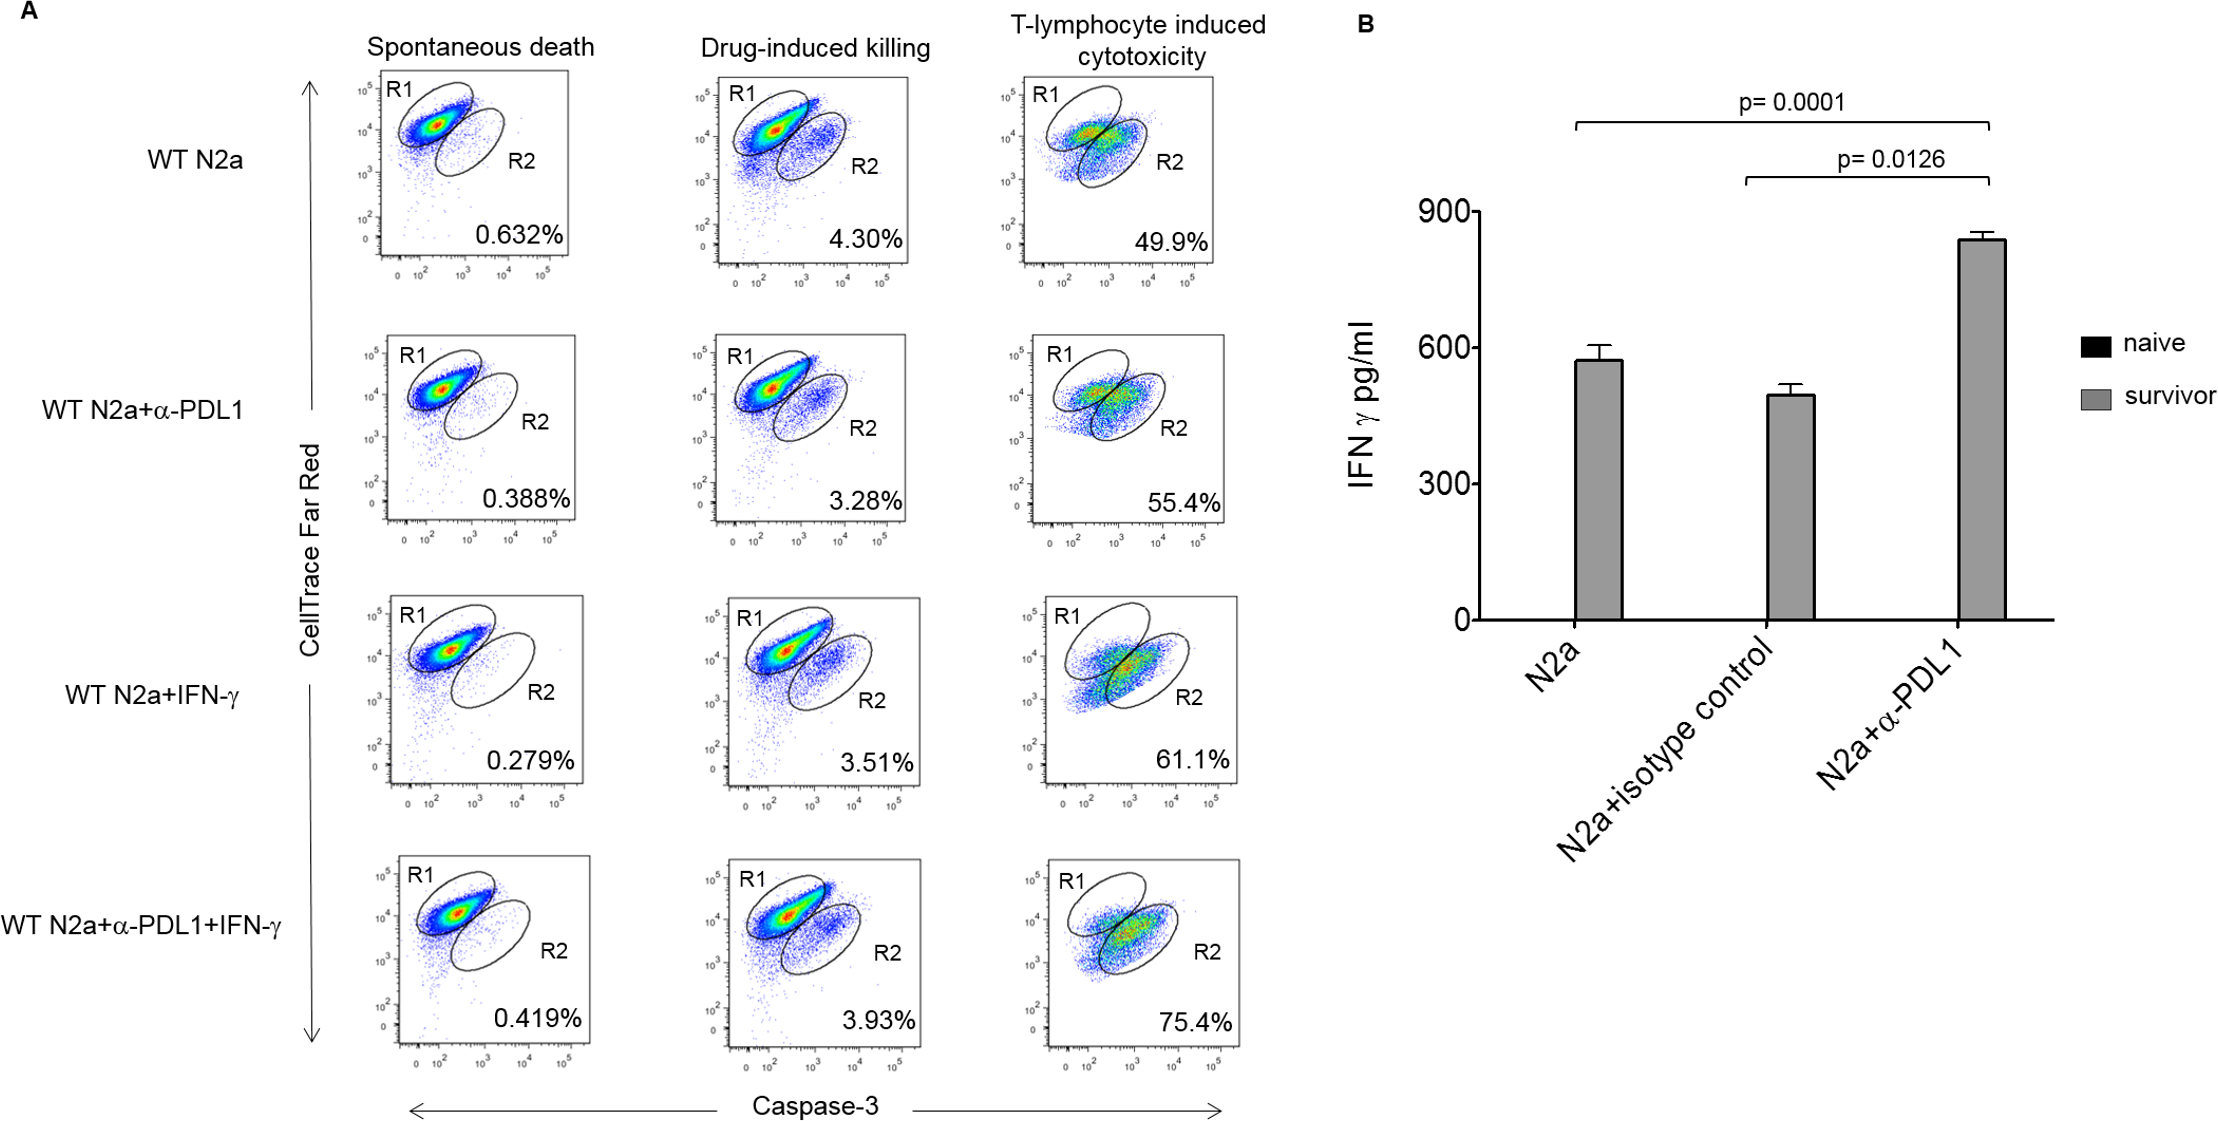 Enhanced effector function of tumor-infiltrating lymphocytes (TILs) and memory response in survivors with inhibition of programmed cell death-ligand 1 (PD-L1).